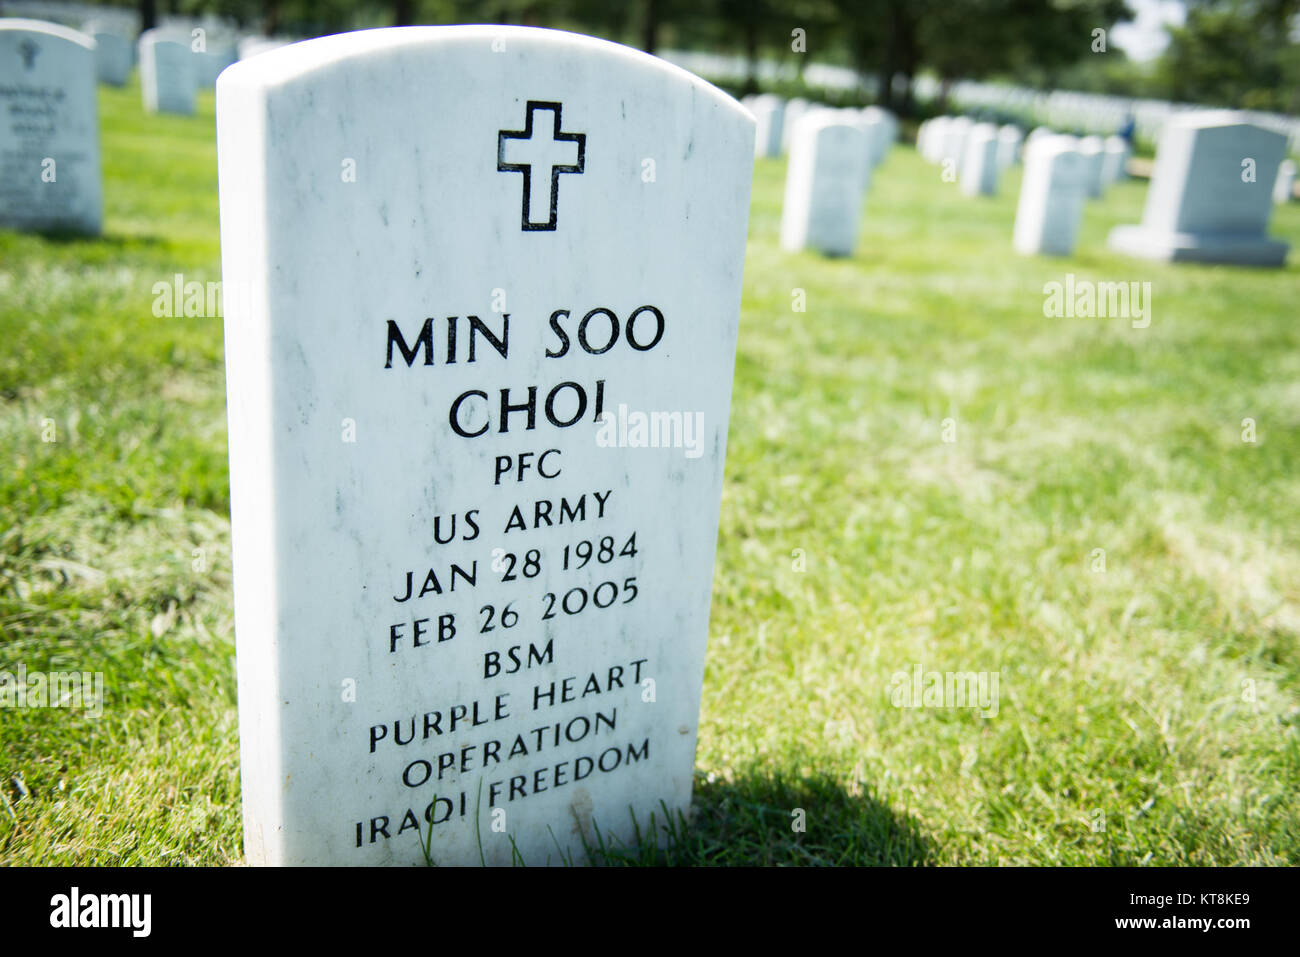 U.S. Army Pfc. Min Soo Choi, born Jan. 28, 1984 and died Feb. 26, 2005, is buried in Section 60, Grave 8101 of Arlington - Stock Image